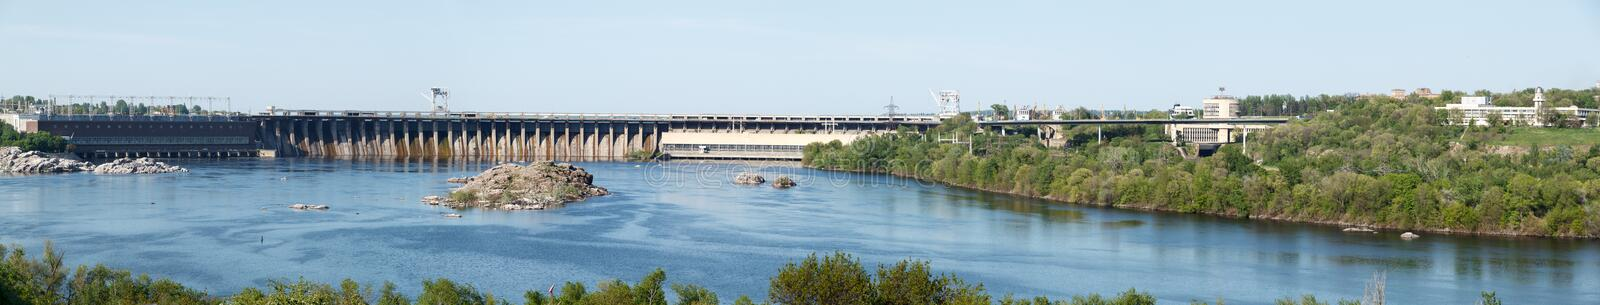 Hydroelectric power station on river Dnipro stock photos